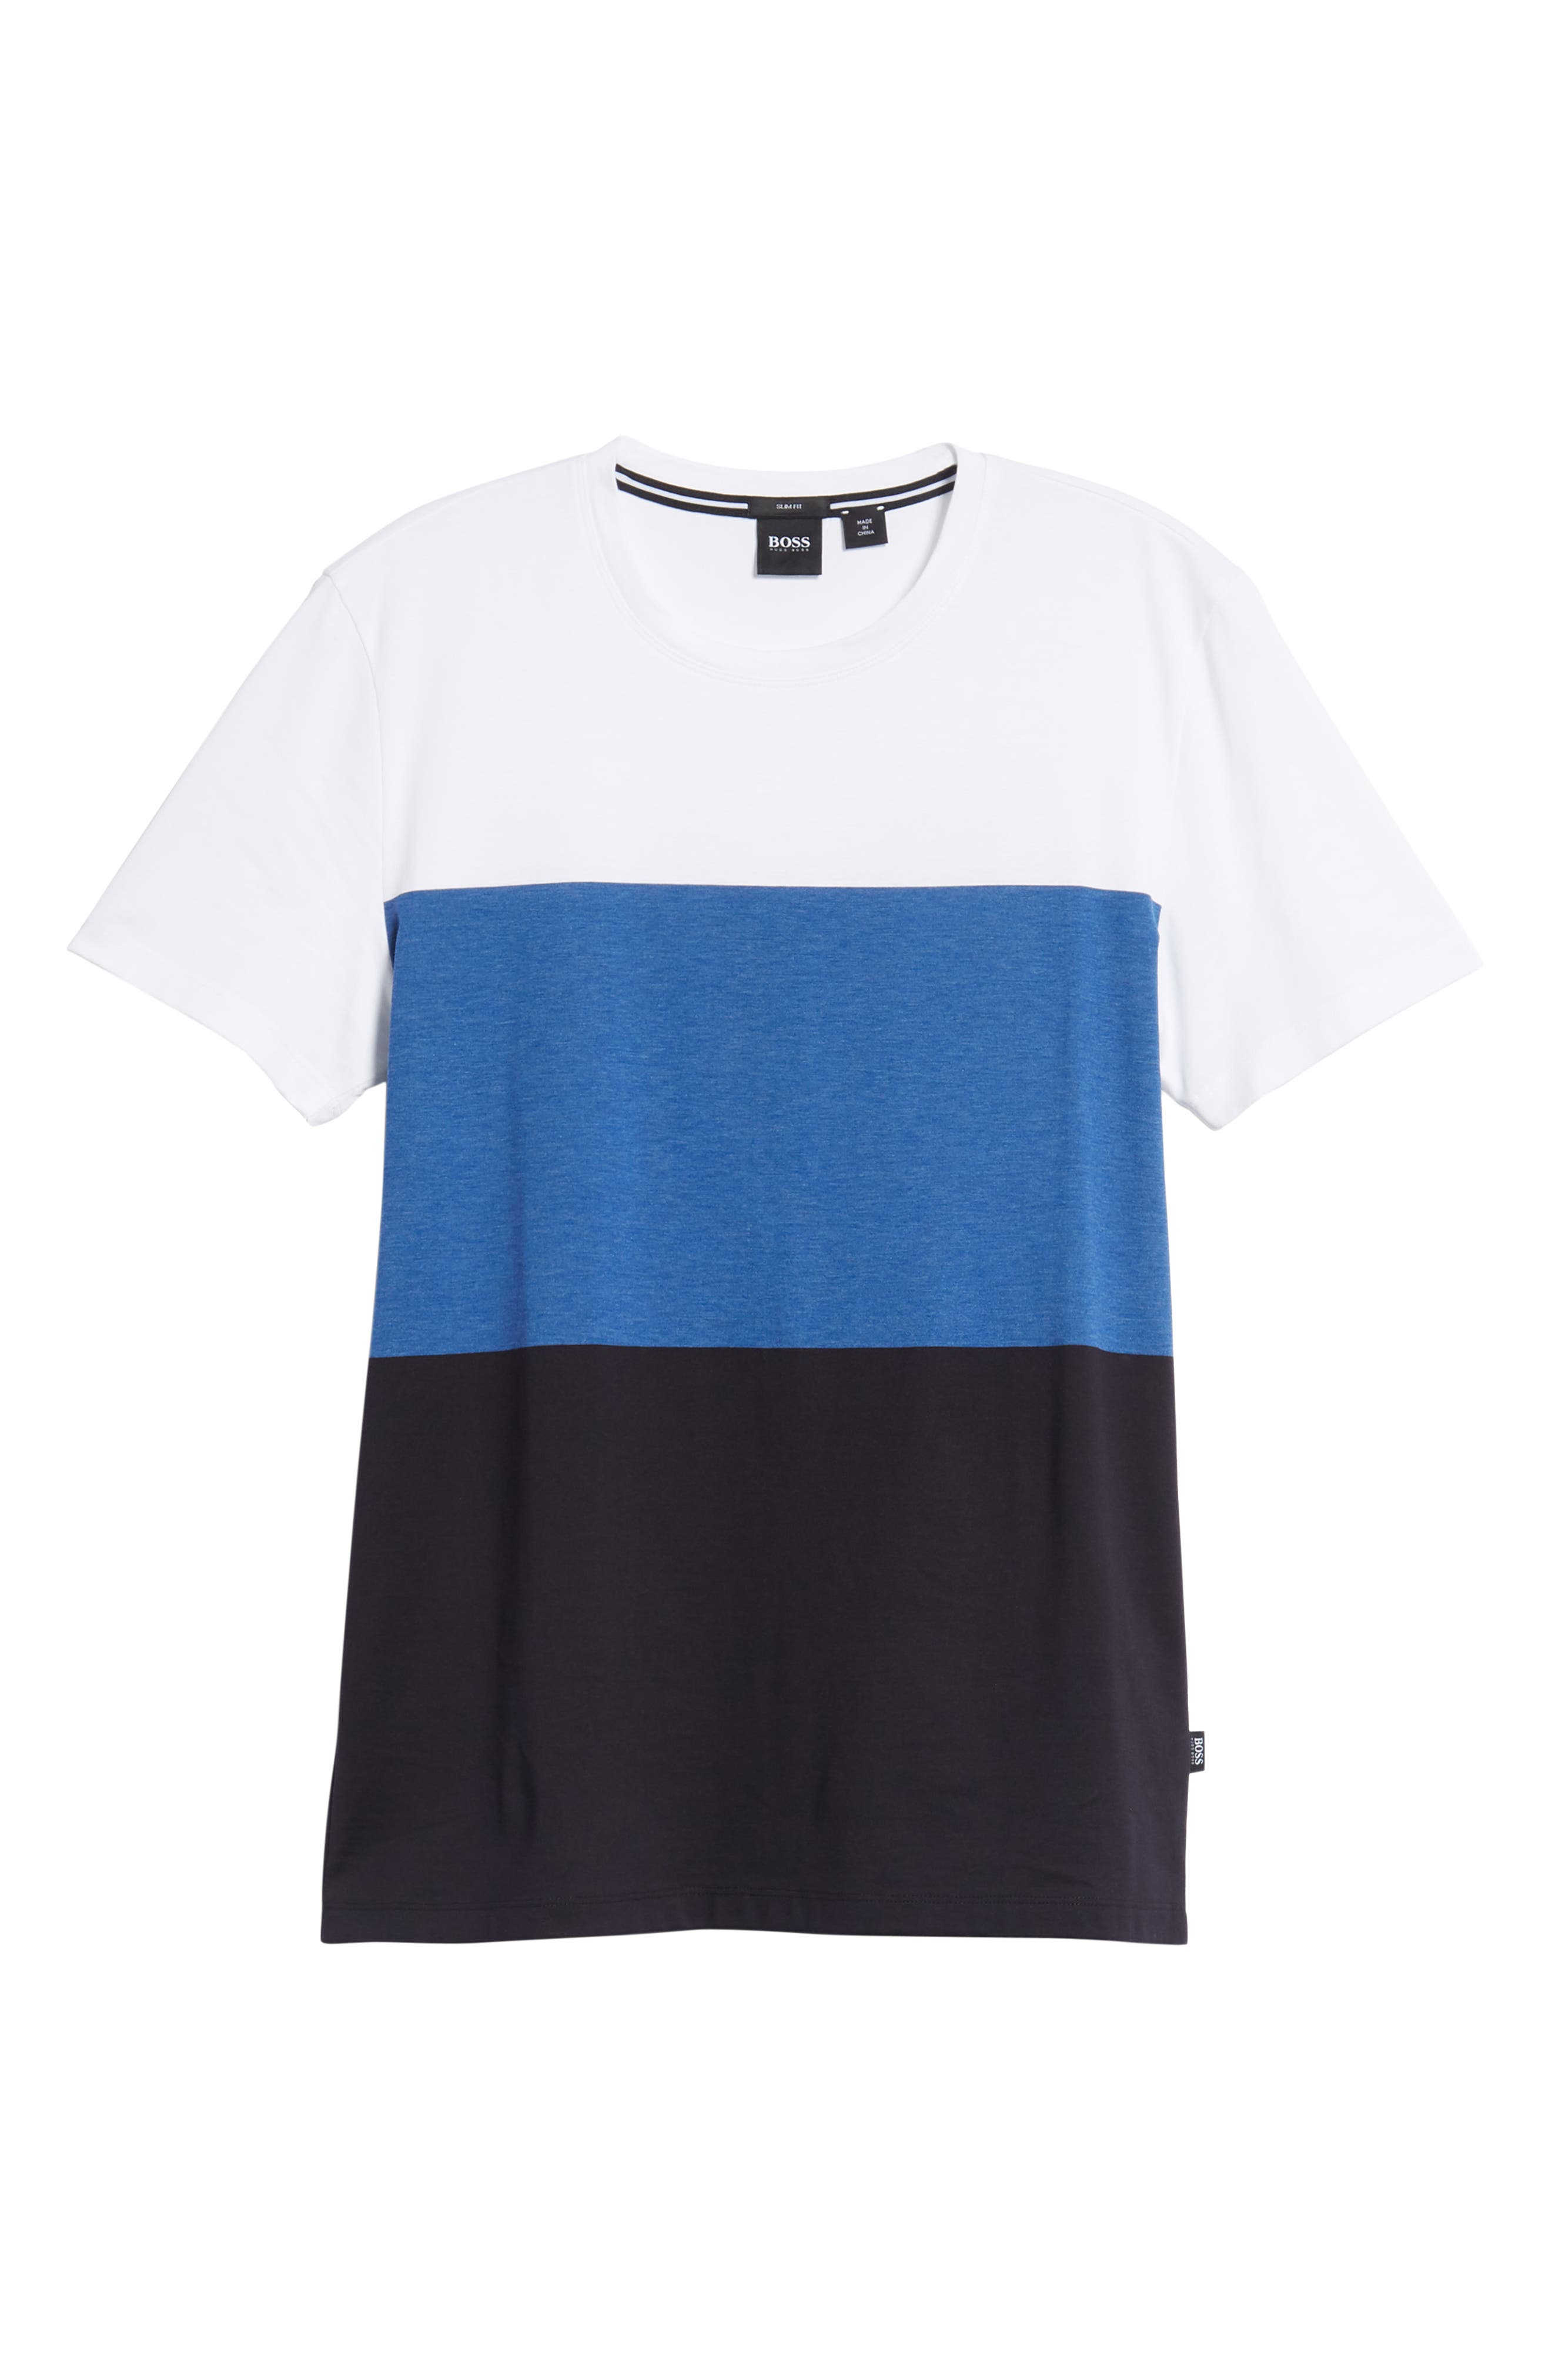 Tessler Colorblock Slim Fit T-Shirt,                             Alternate thumbnail 6, color,                             474